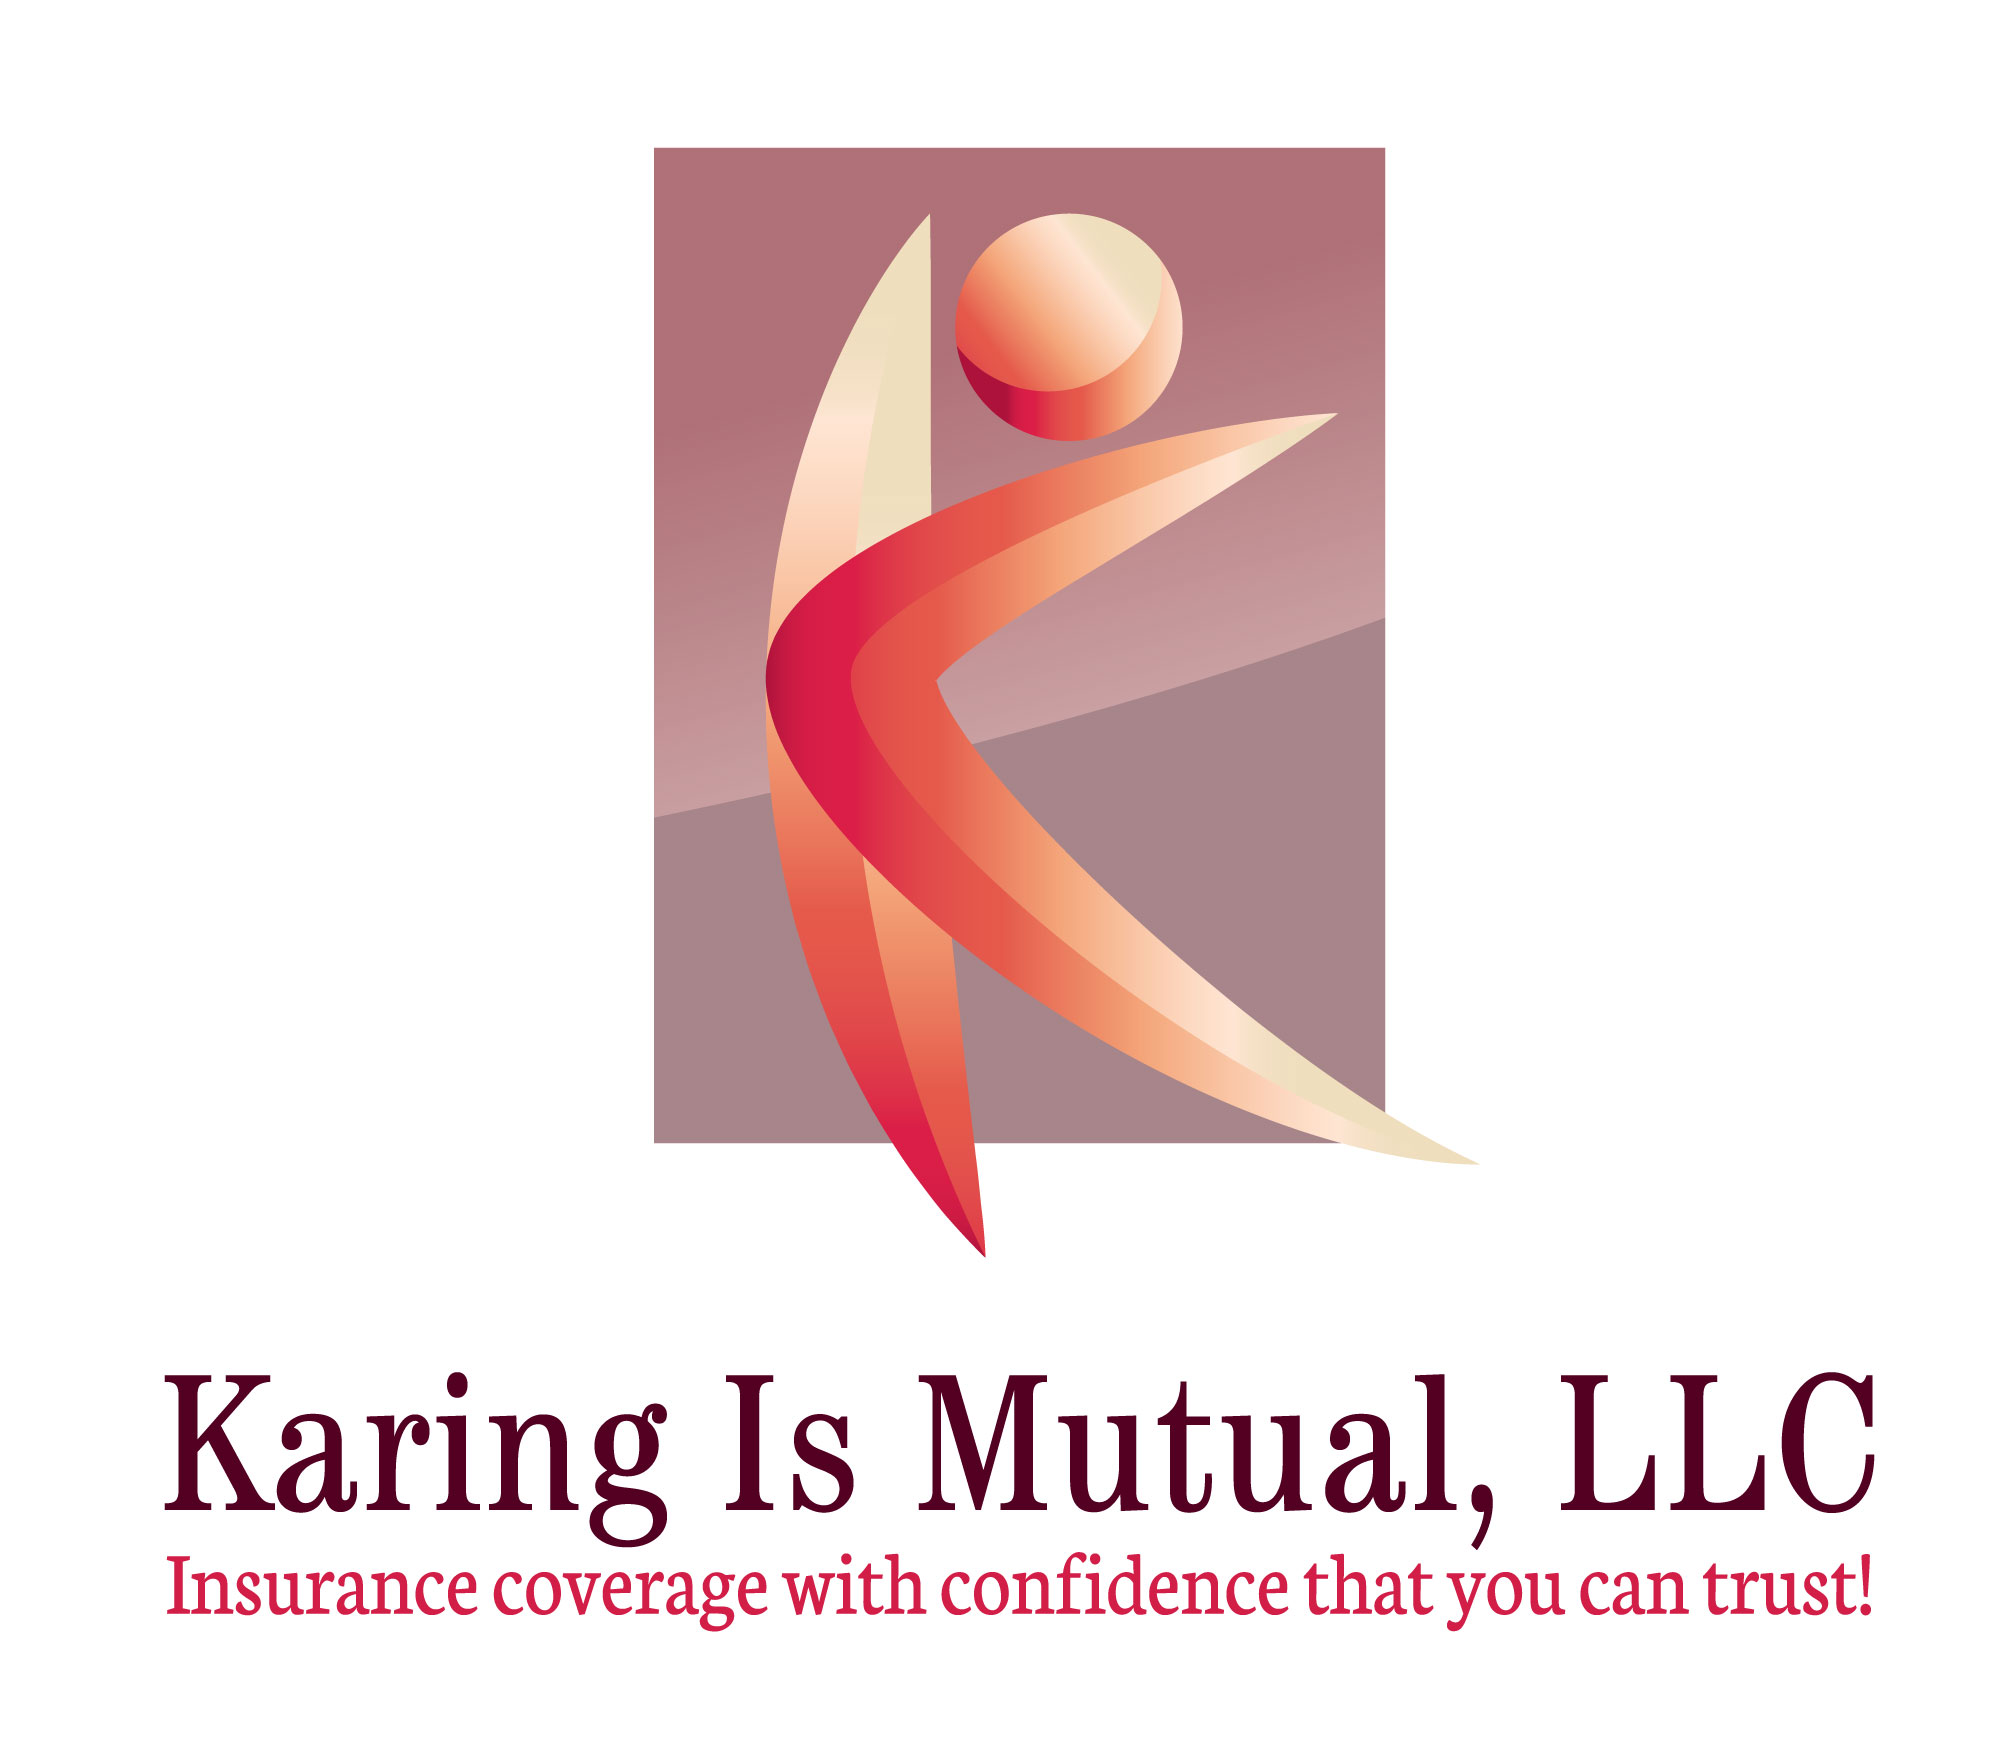 Small business insurance broker, licensed insurance broker & health insurance broker - Union NJ, Union County NJ and all of NJ.